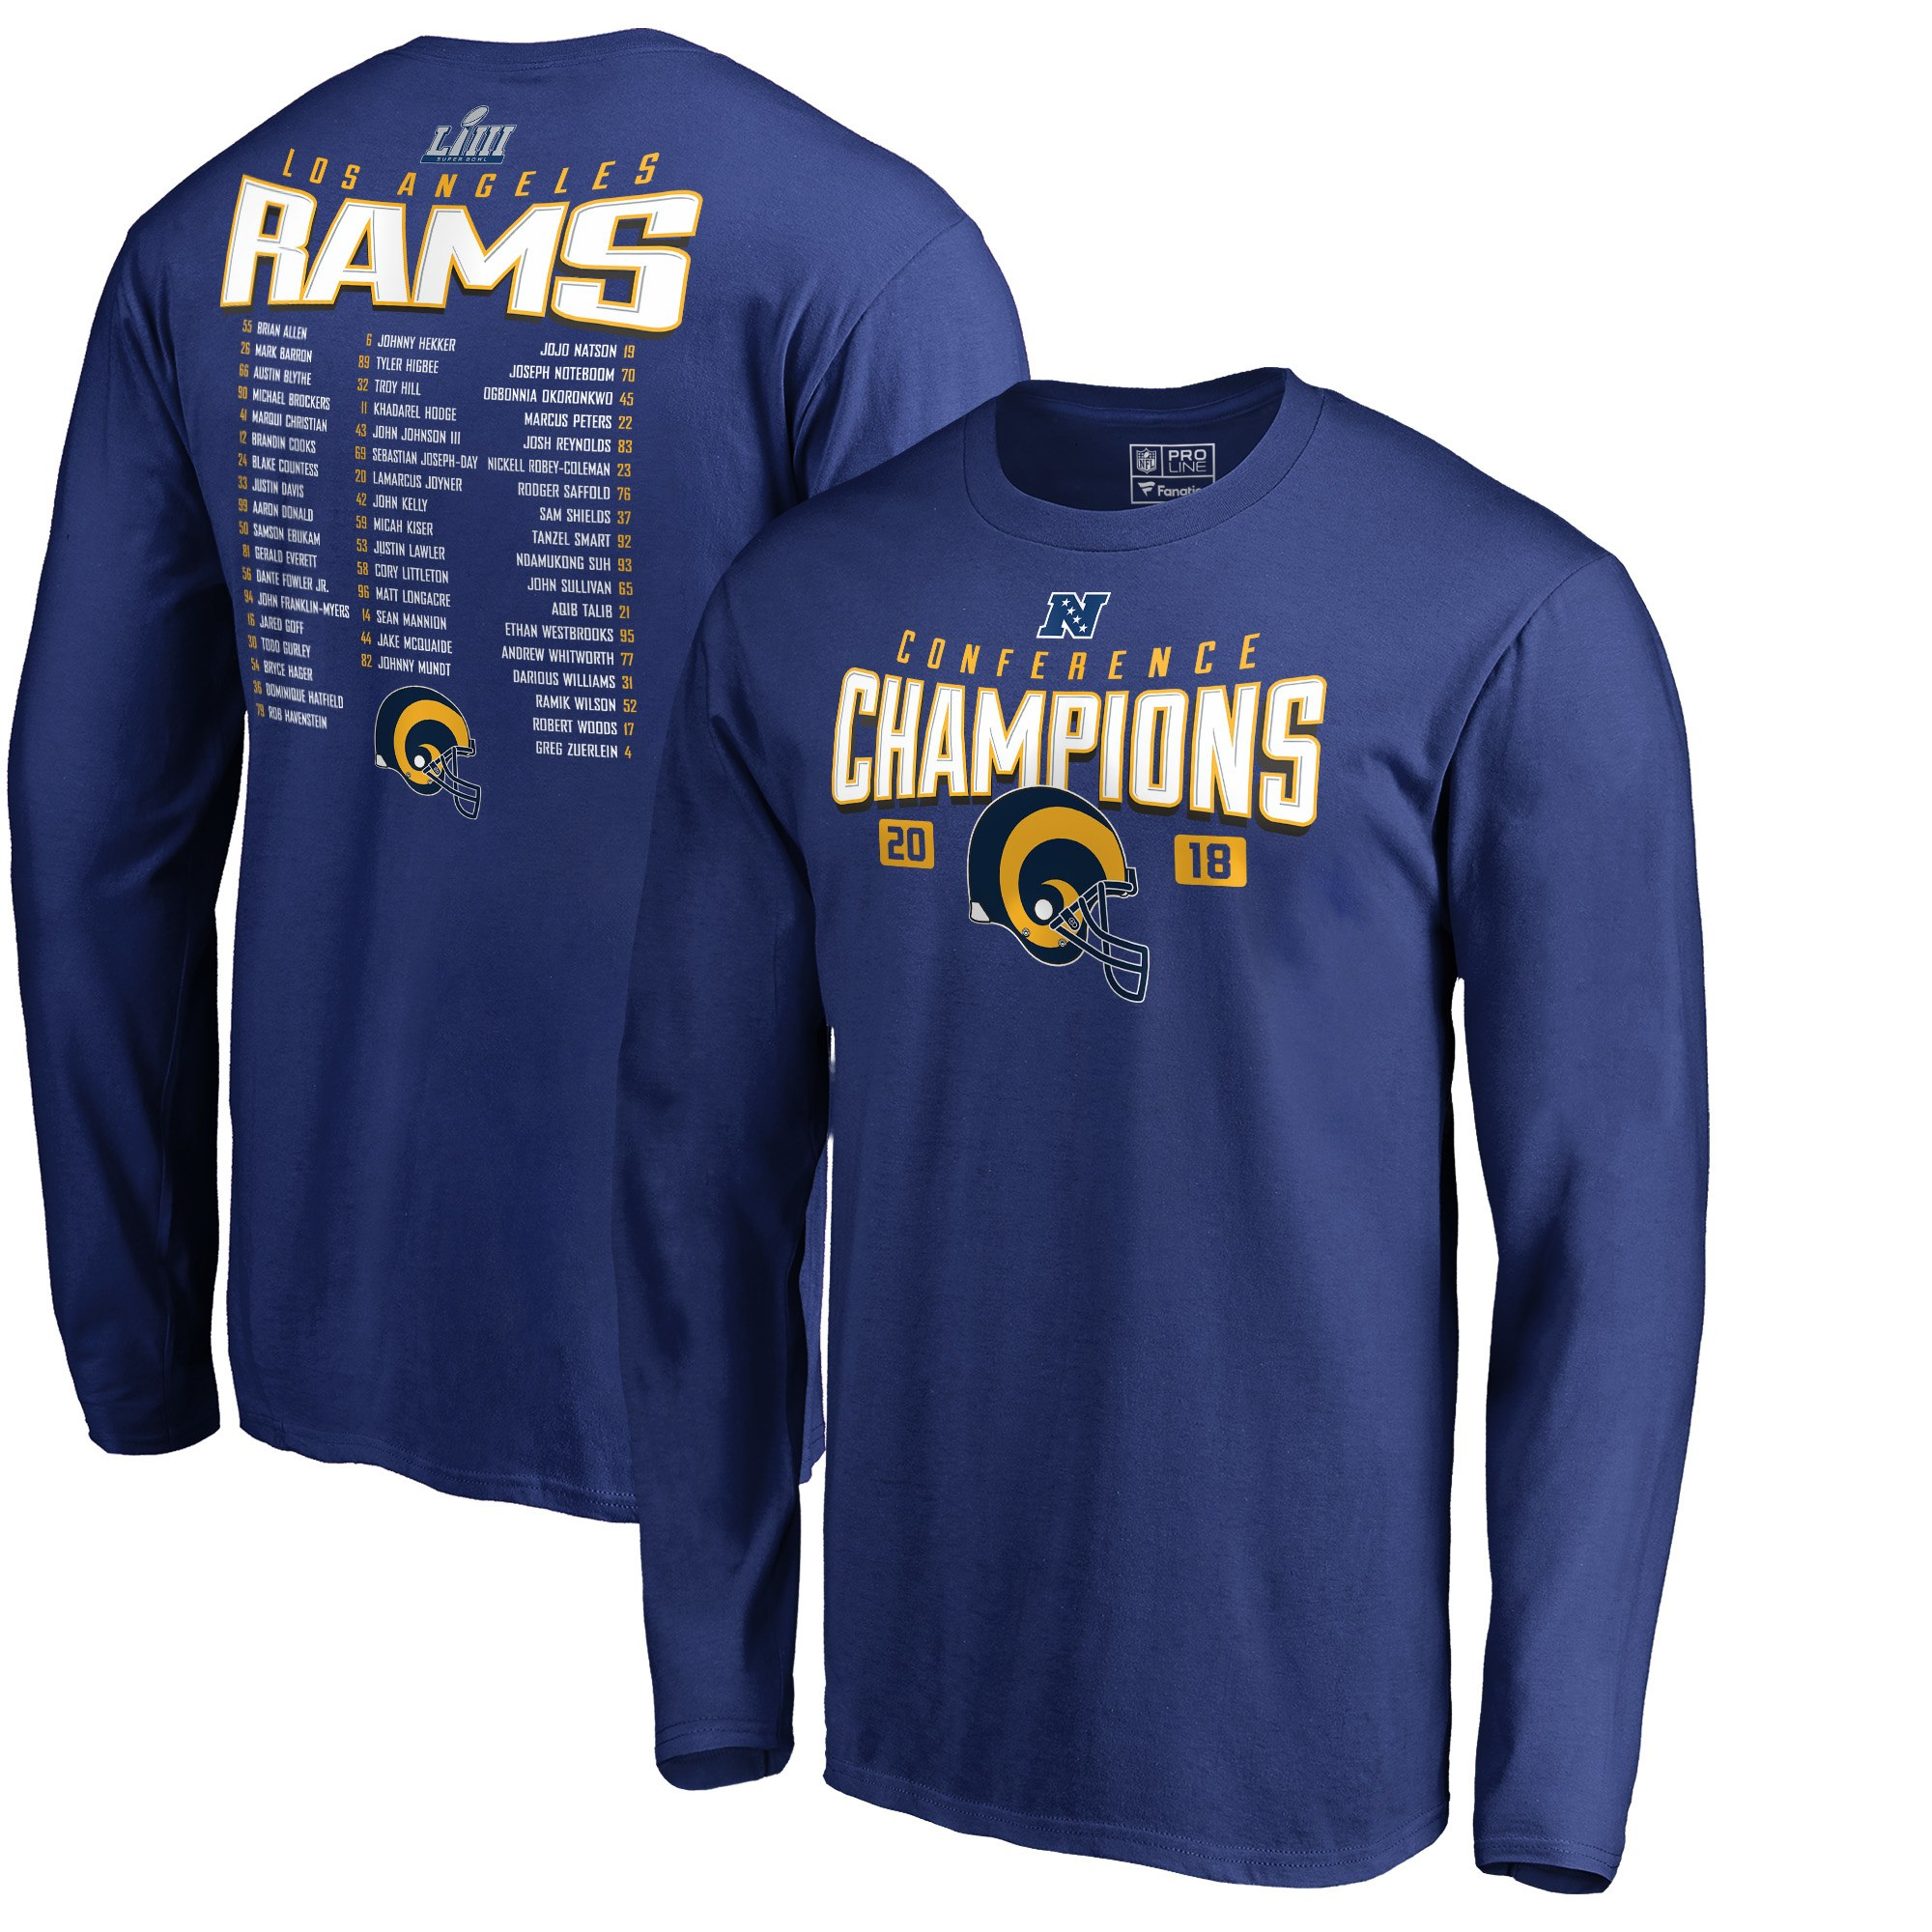 Los Angeles Rams NFL Pro Line by Fanatics Branded 2018 NFC Champions Free Safety Roster Long Sleeve T-Shirt Royal